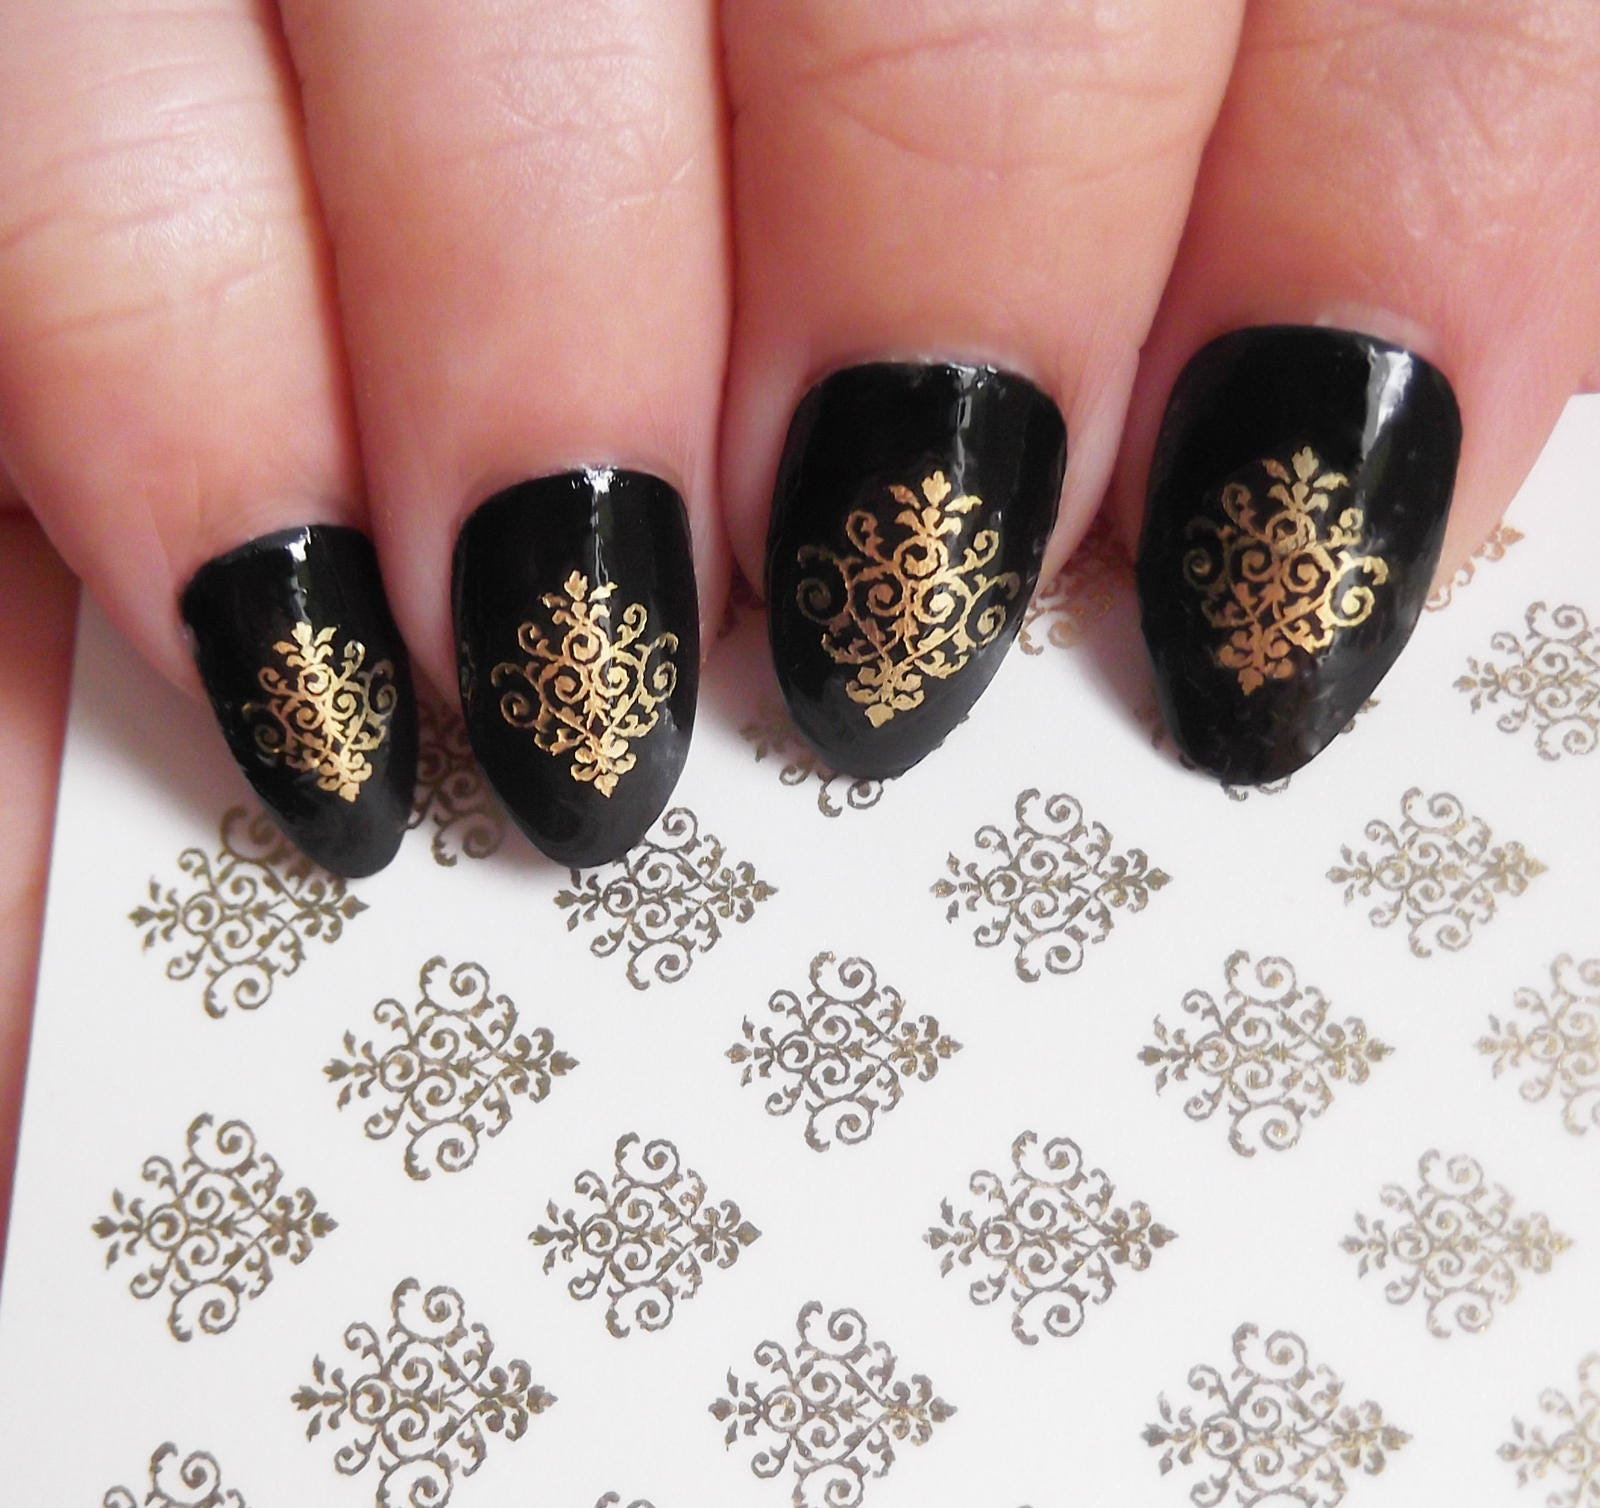 28 Gold Lace Damask Nail Art Dmgs Waterslide Transfer Decals Etsy